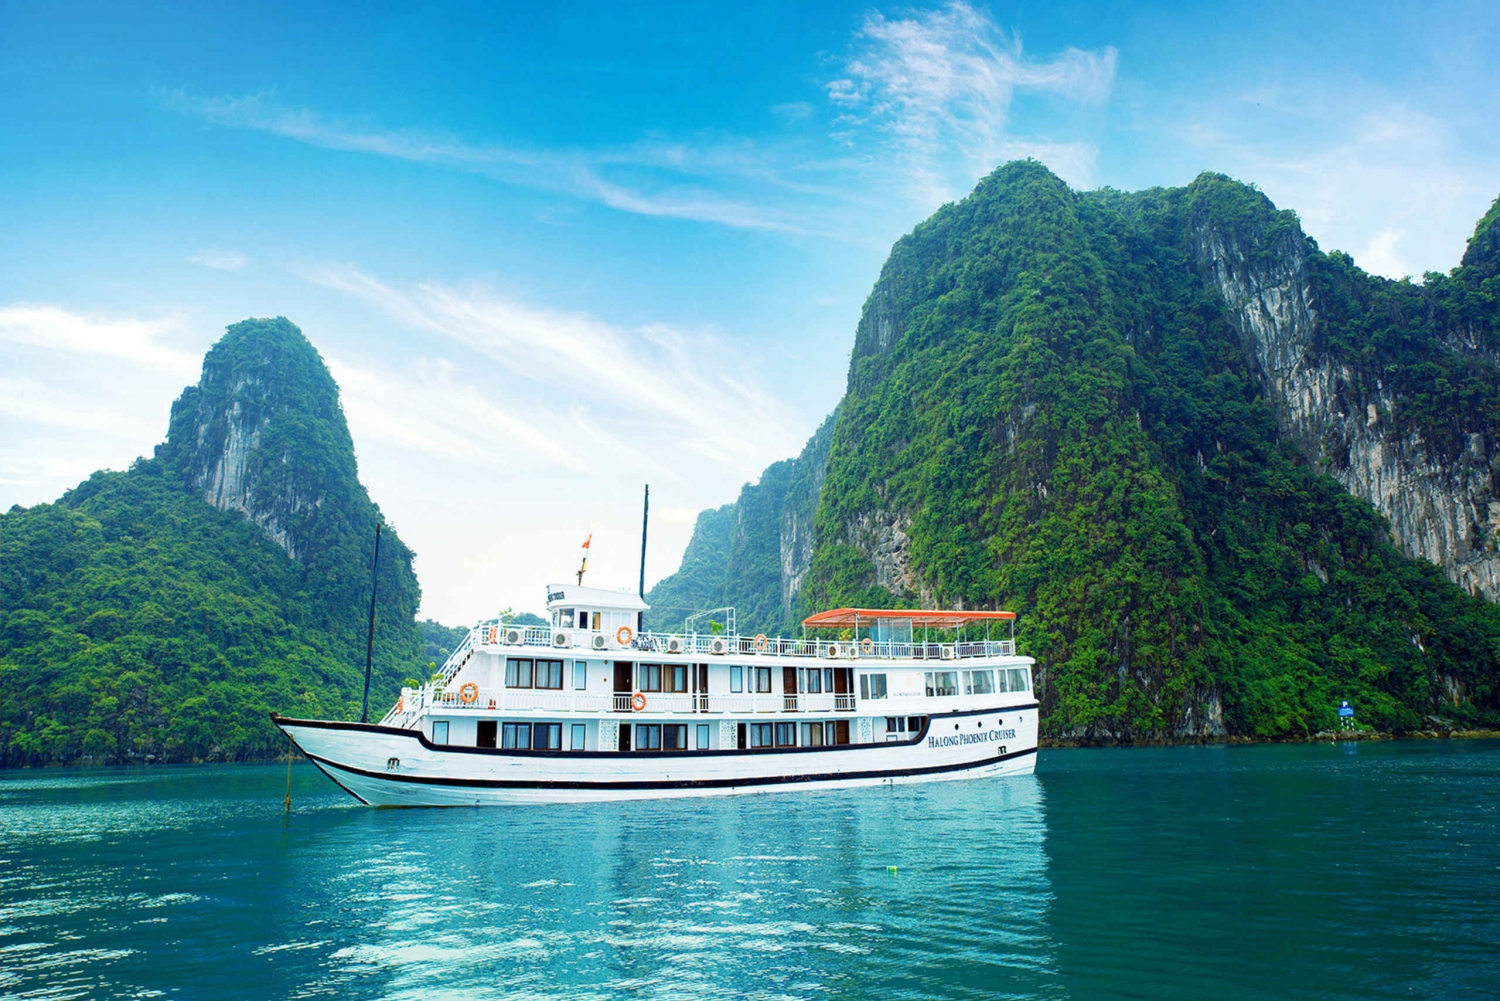 From Hanoi: Halong Explorer 3-Day 4-Star Cruise